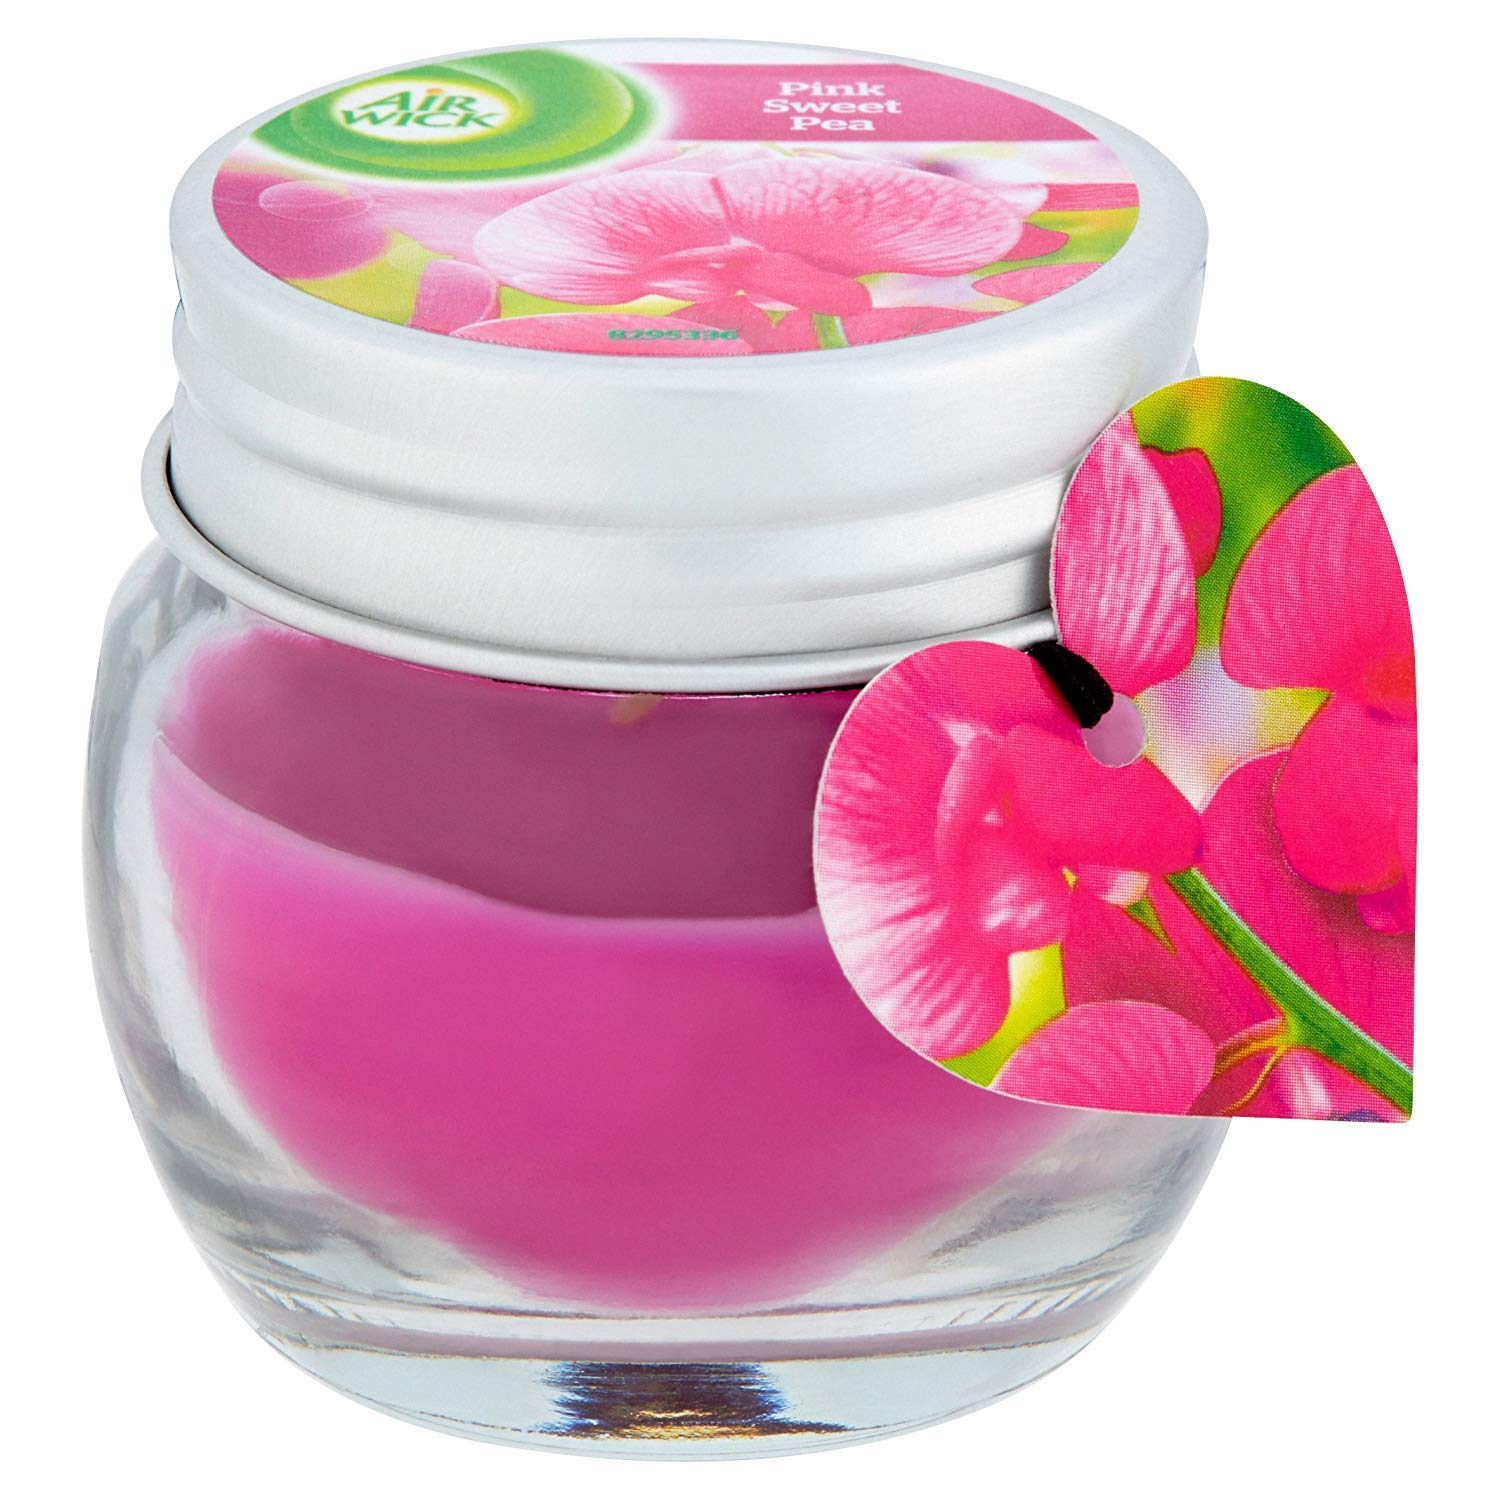 2.2 Airwick Jar Scented Candle Pink Sweet Pea